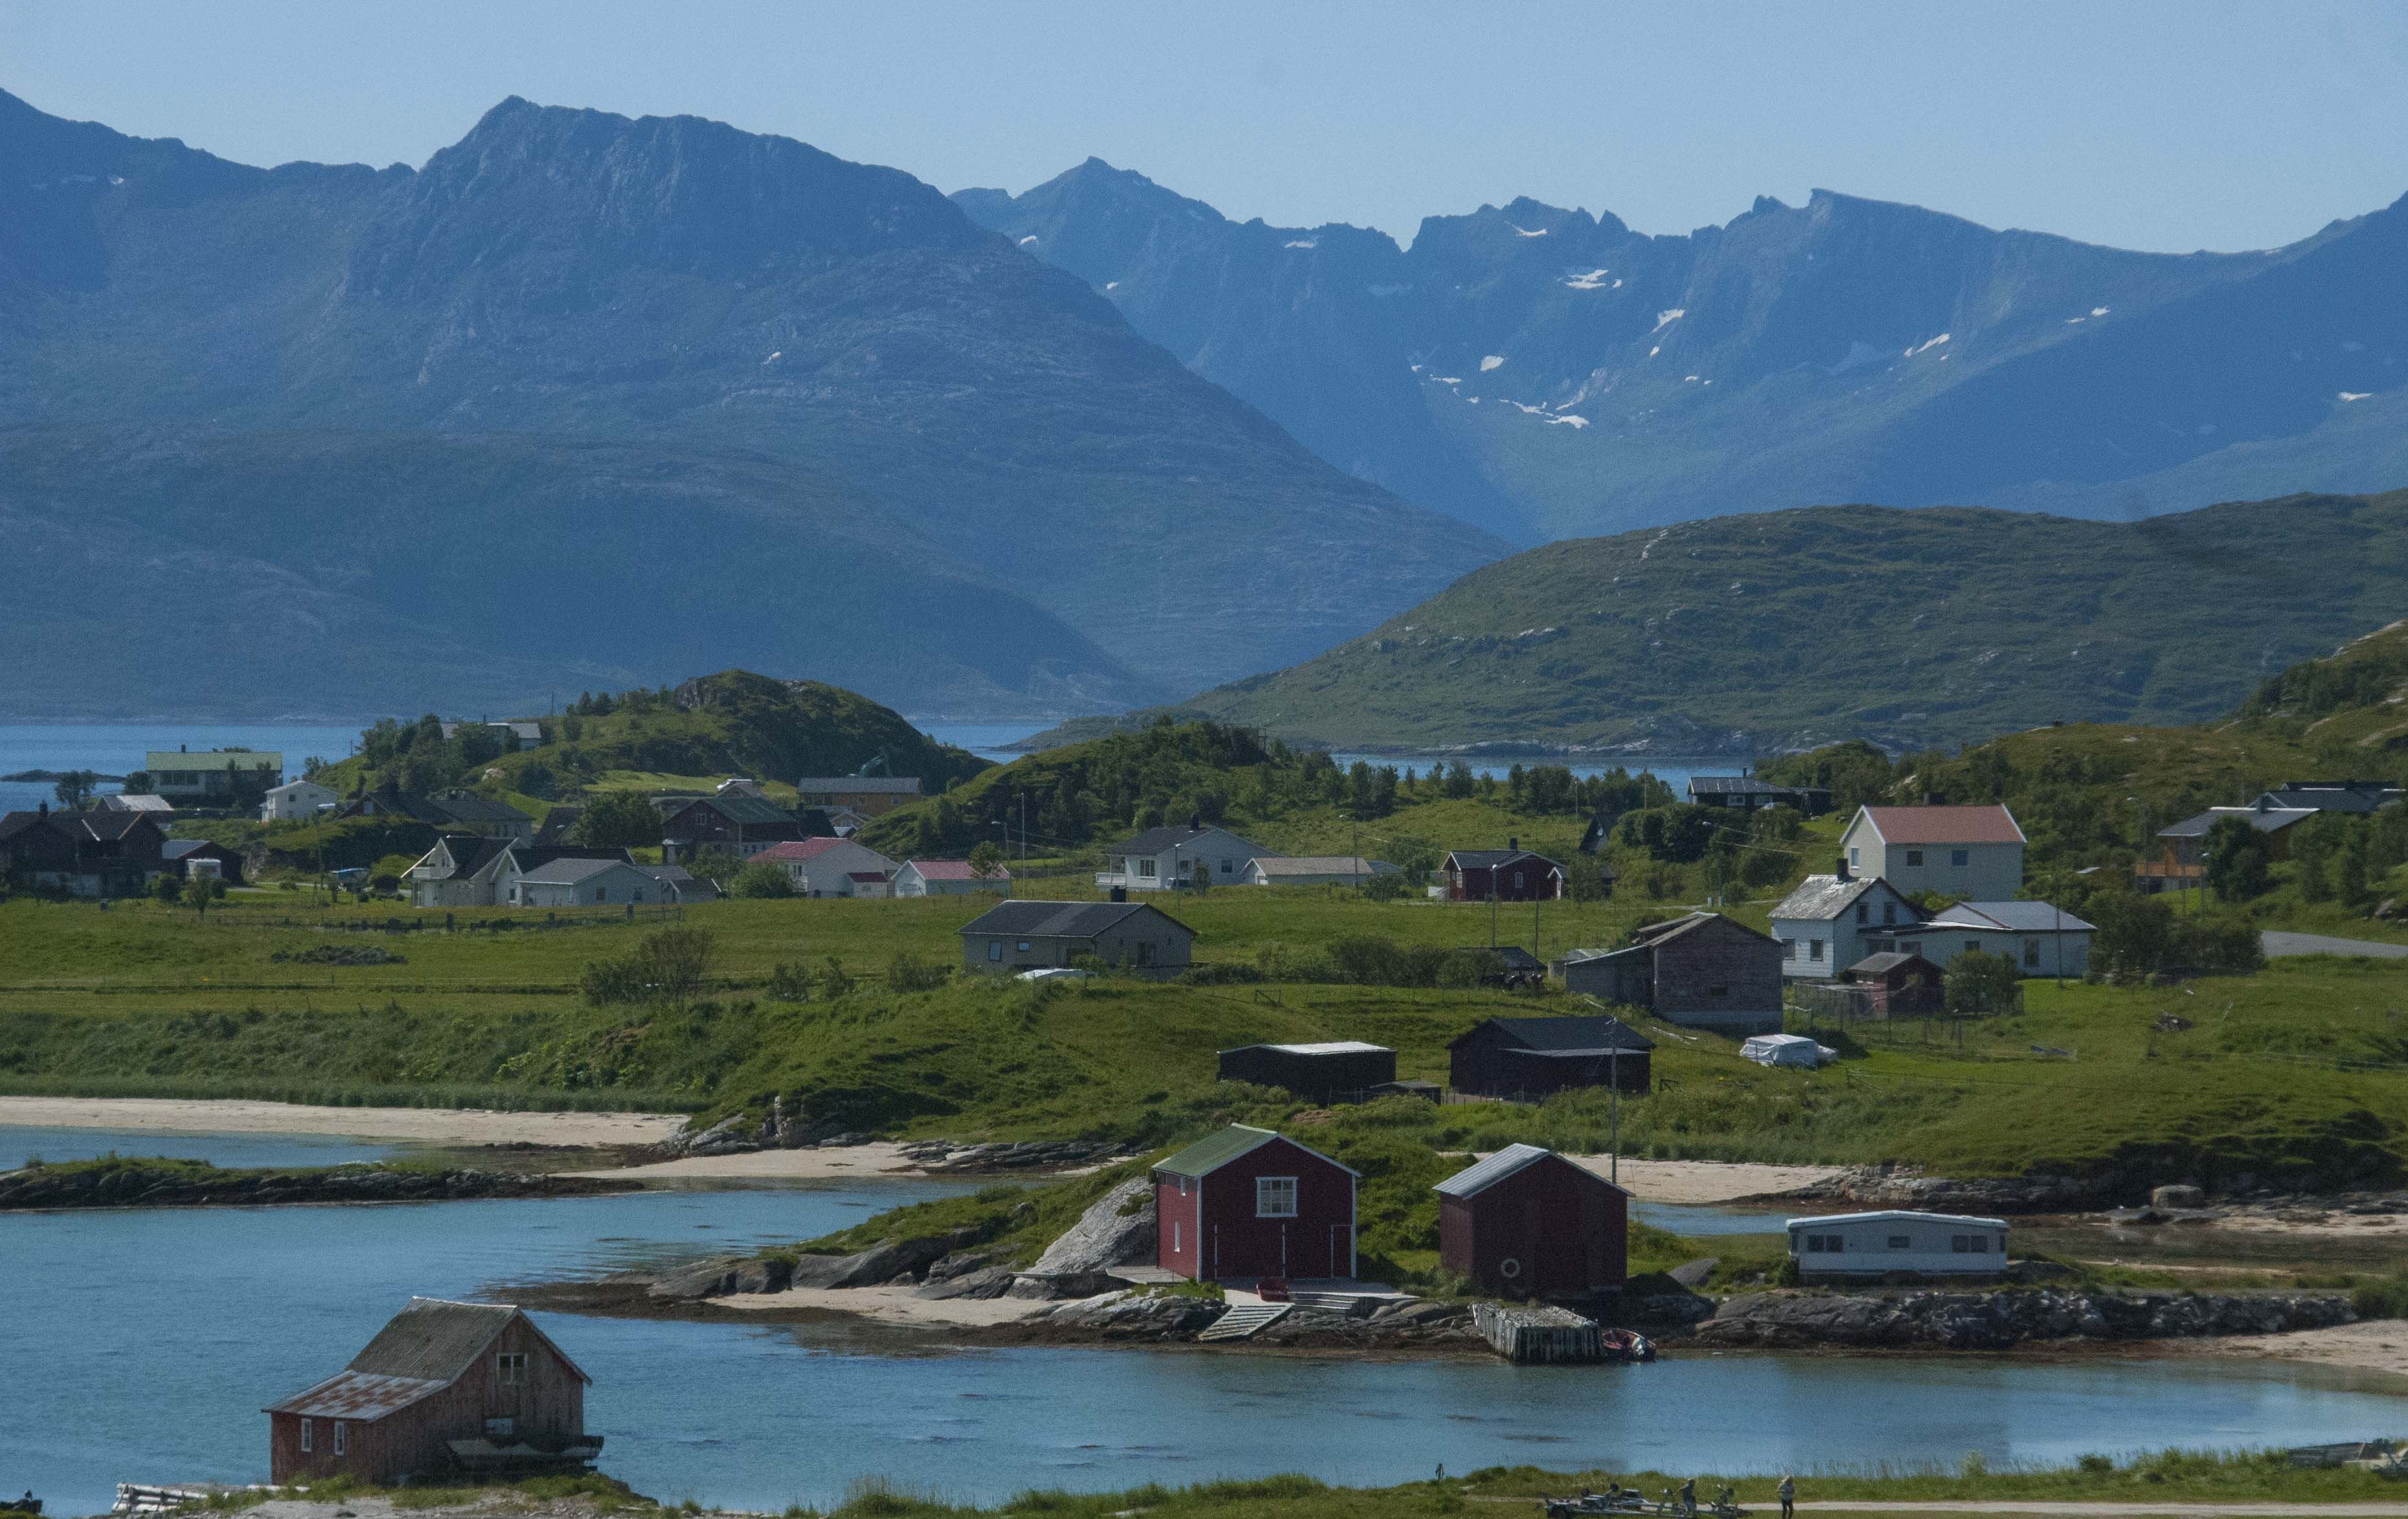 Discover the fjords of Kvaløya Island by car - The Green Adventure